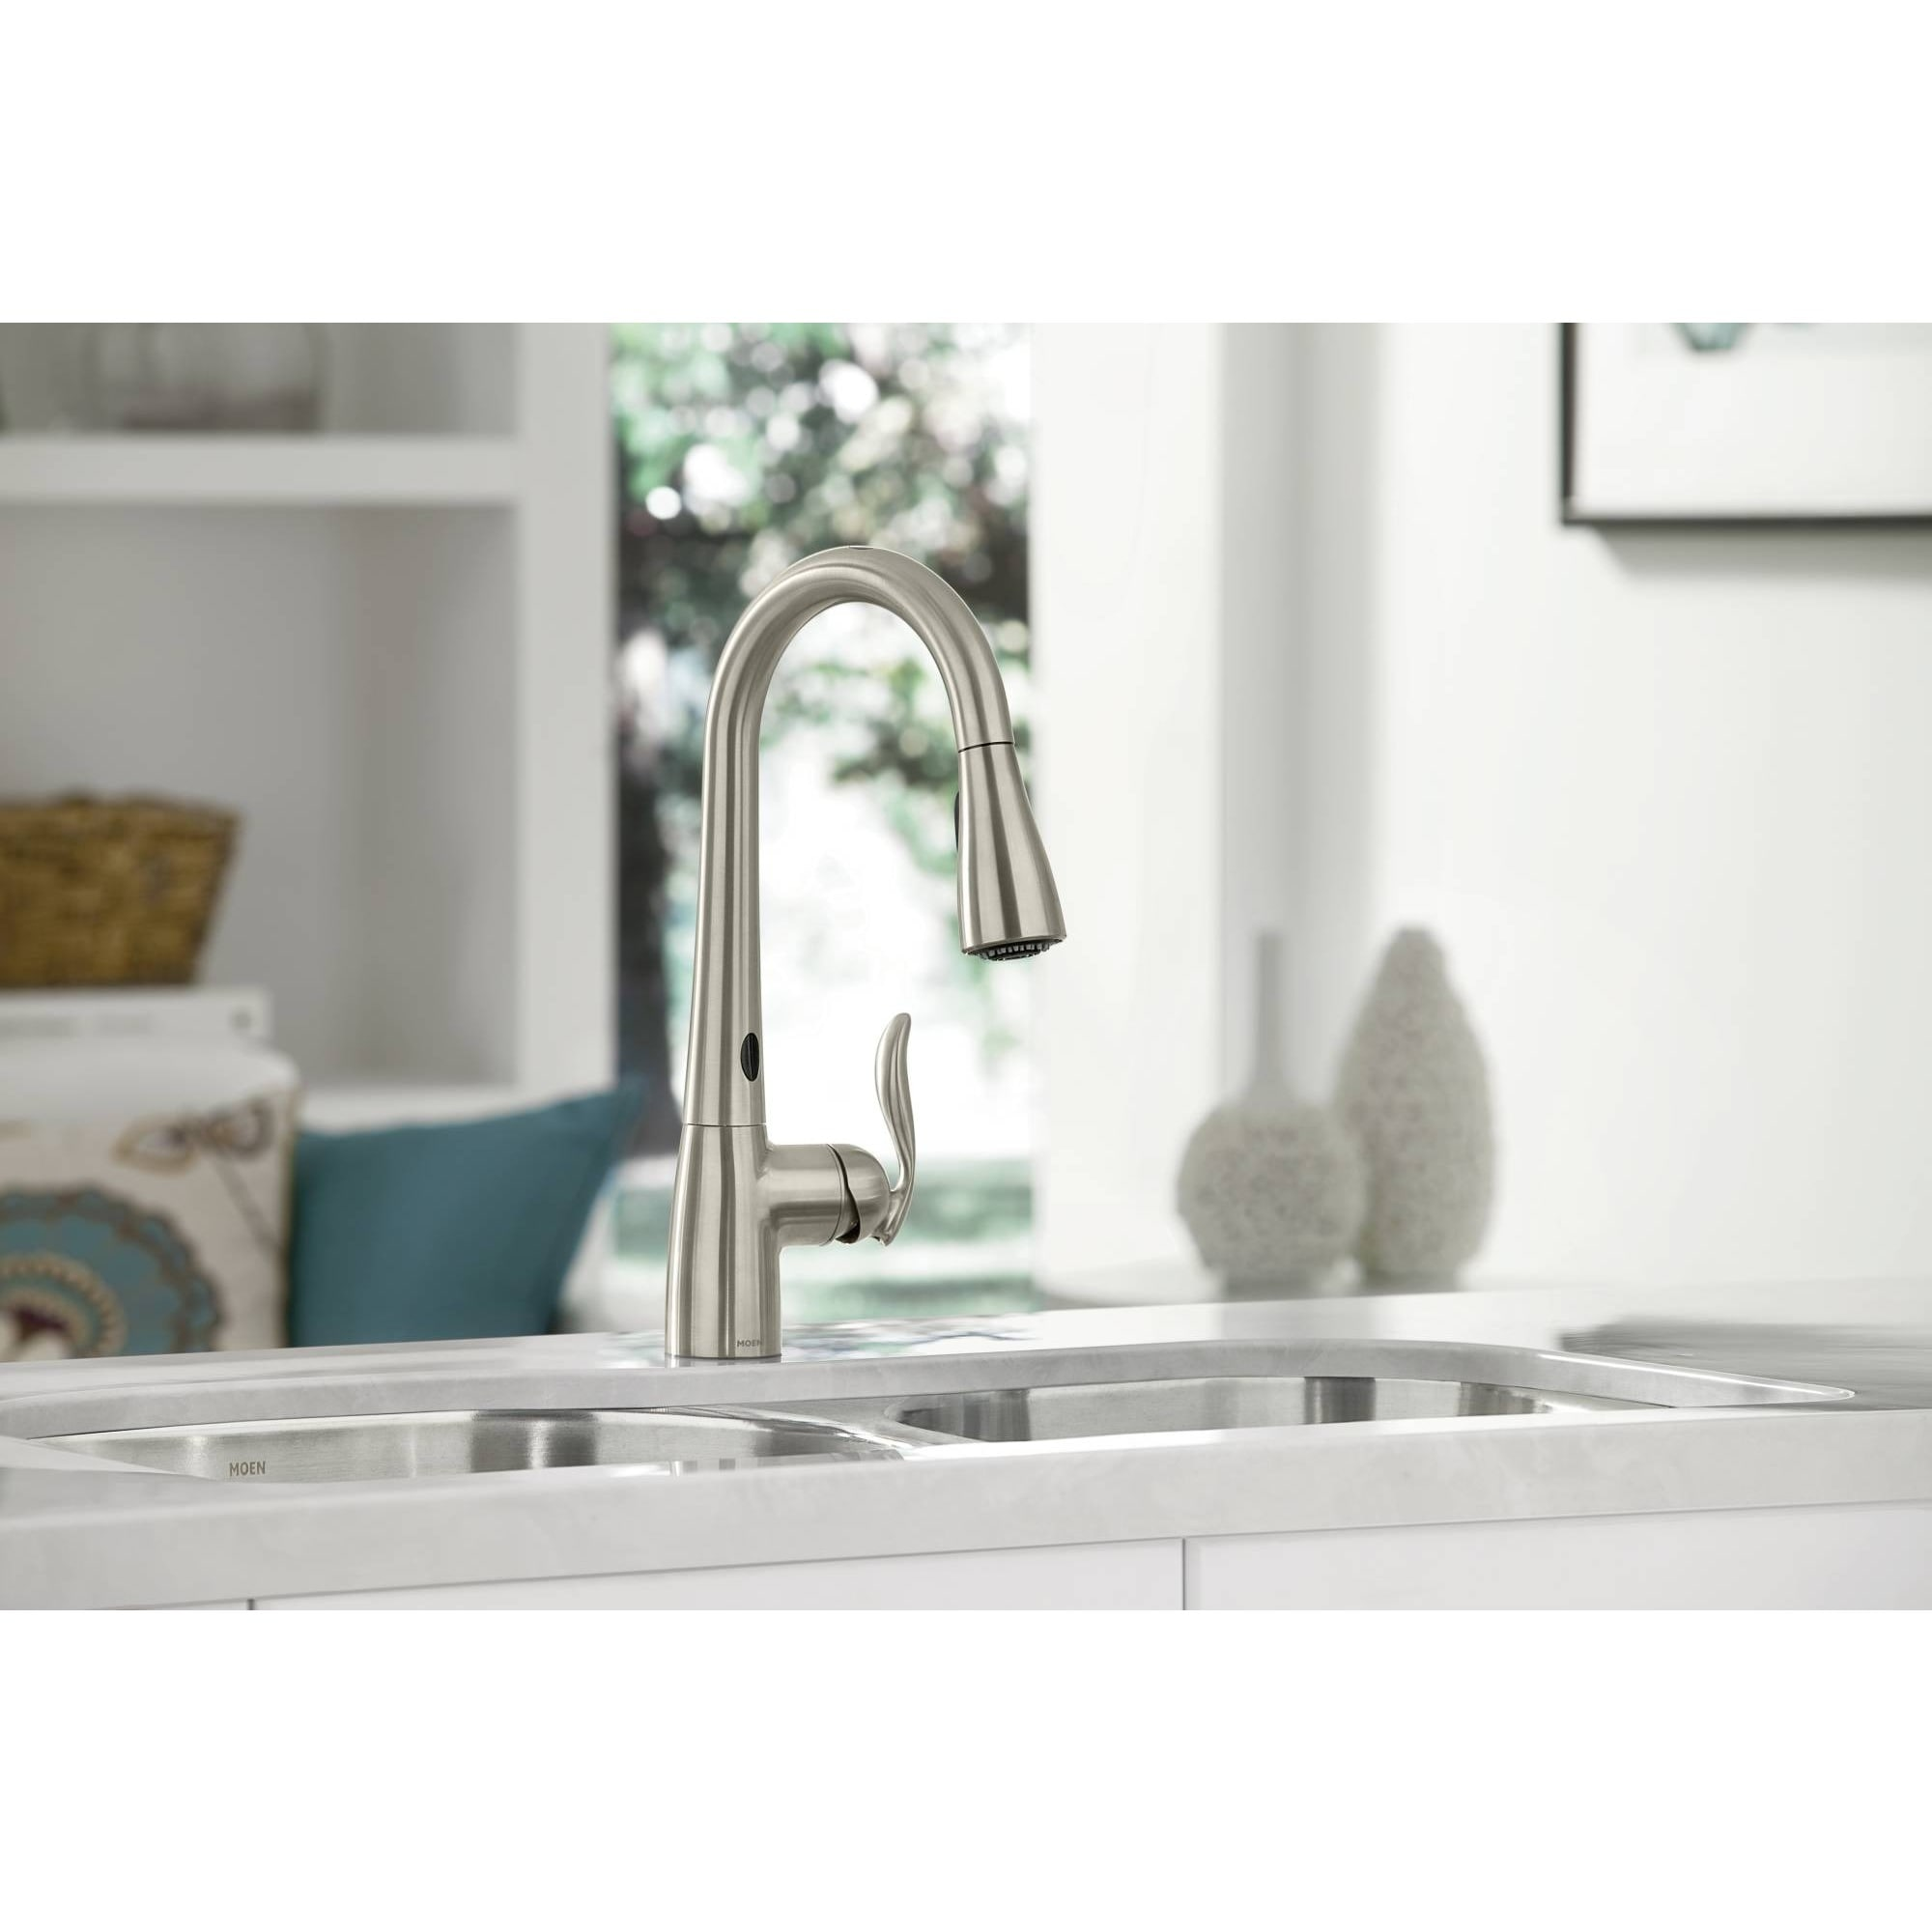 Moen Arbor MotionSense Kitchen Faucet - Free Shipping Today ...